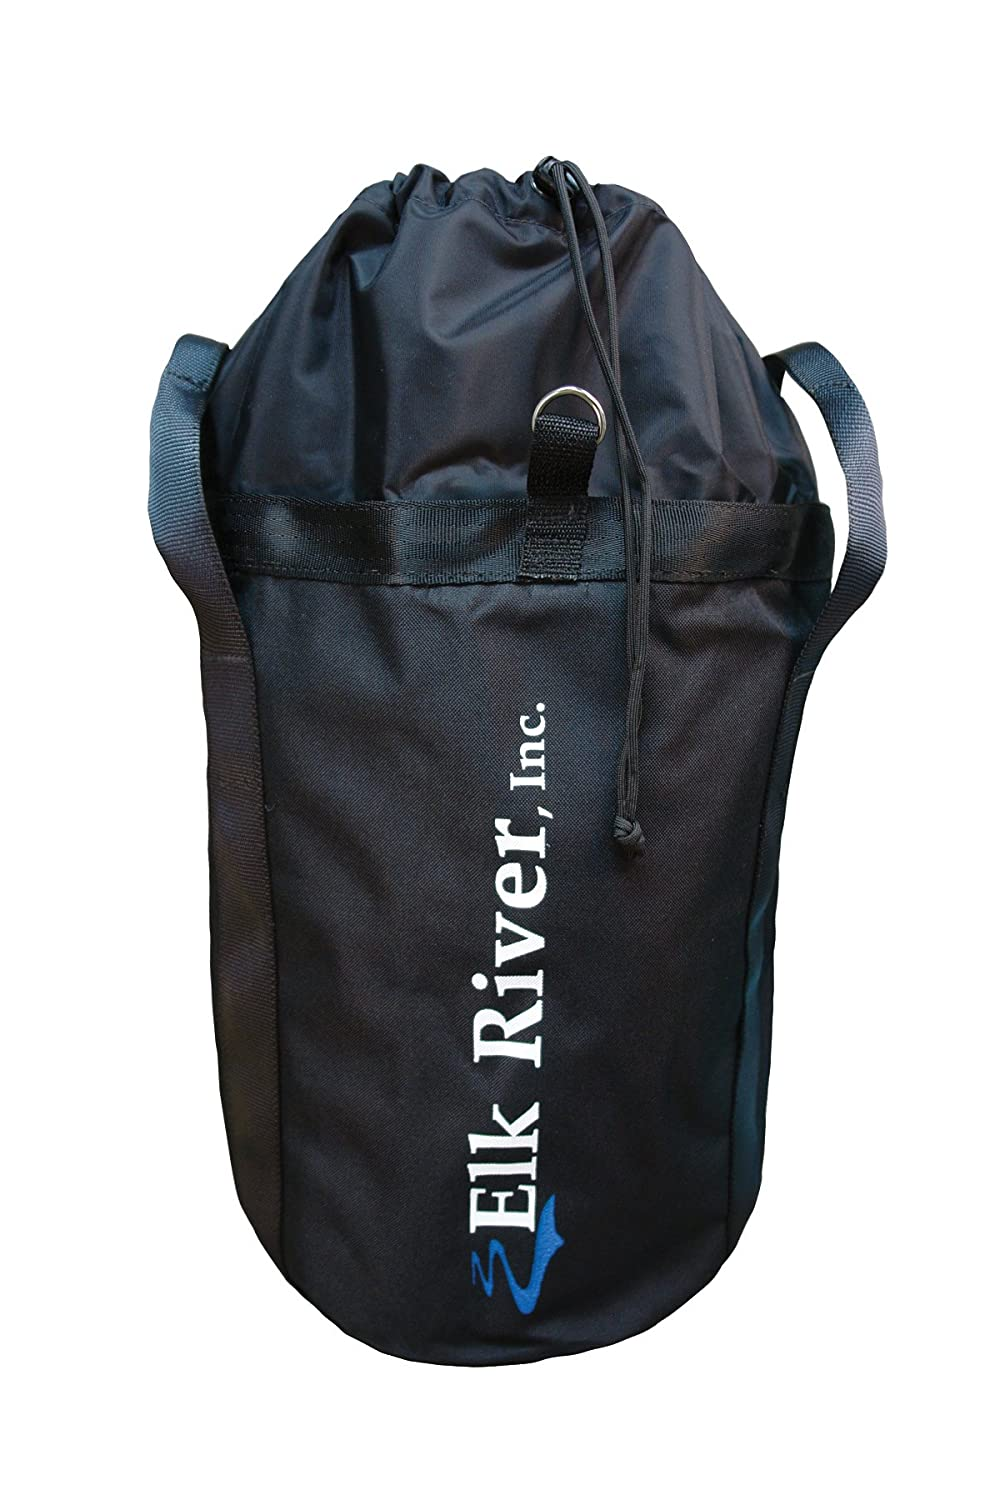 Elk River 68303 Pinnacle Polyester/Nylon 3 D-Ring Harness with Quick-Connect Chest, Large by Elk River B005FMPVNO